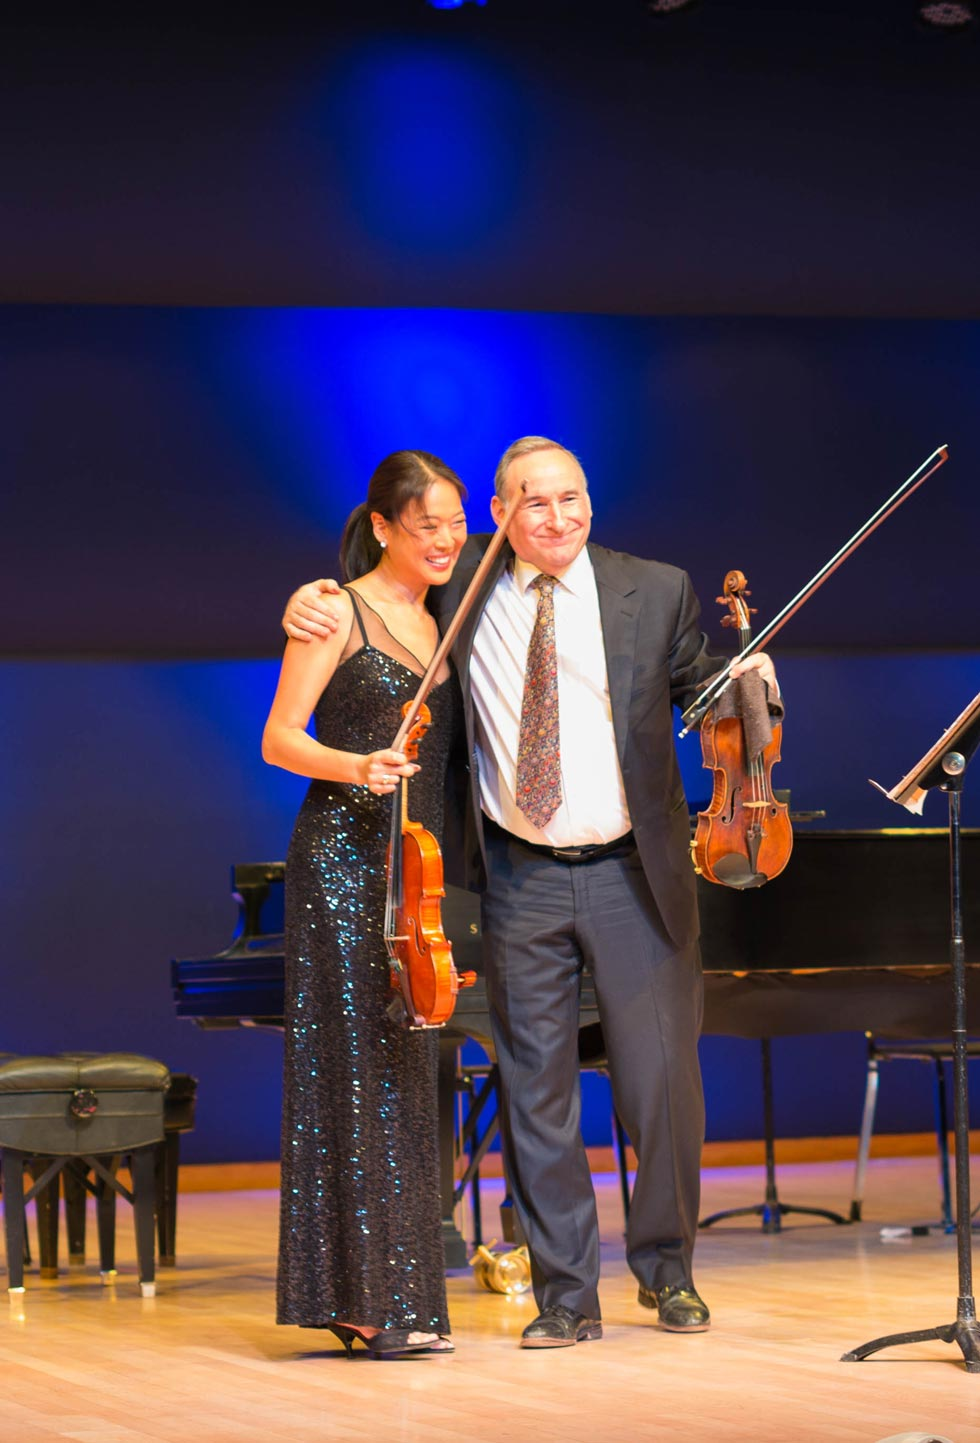 two violinists receiving applause after performance